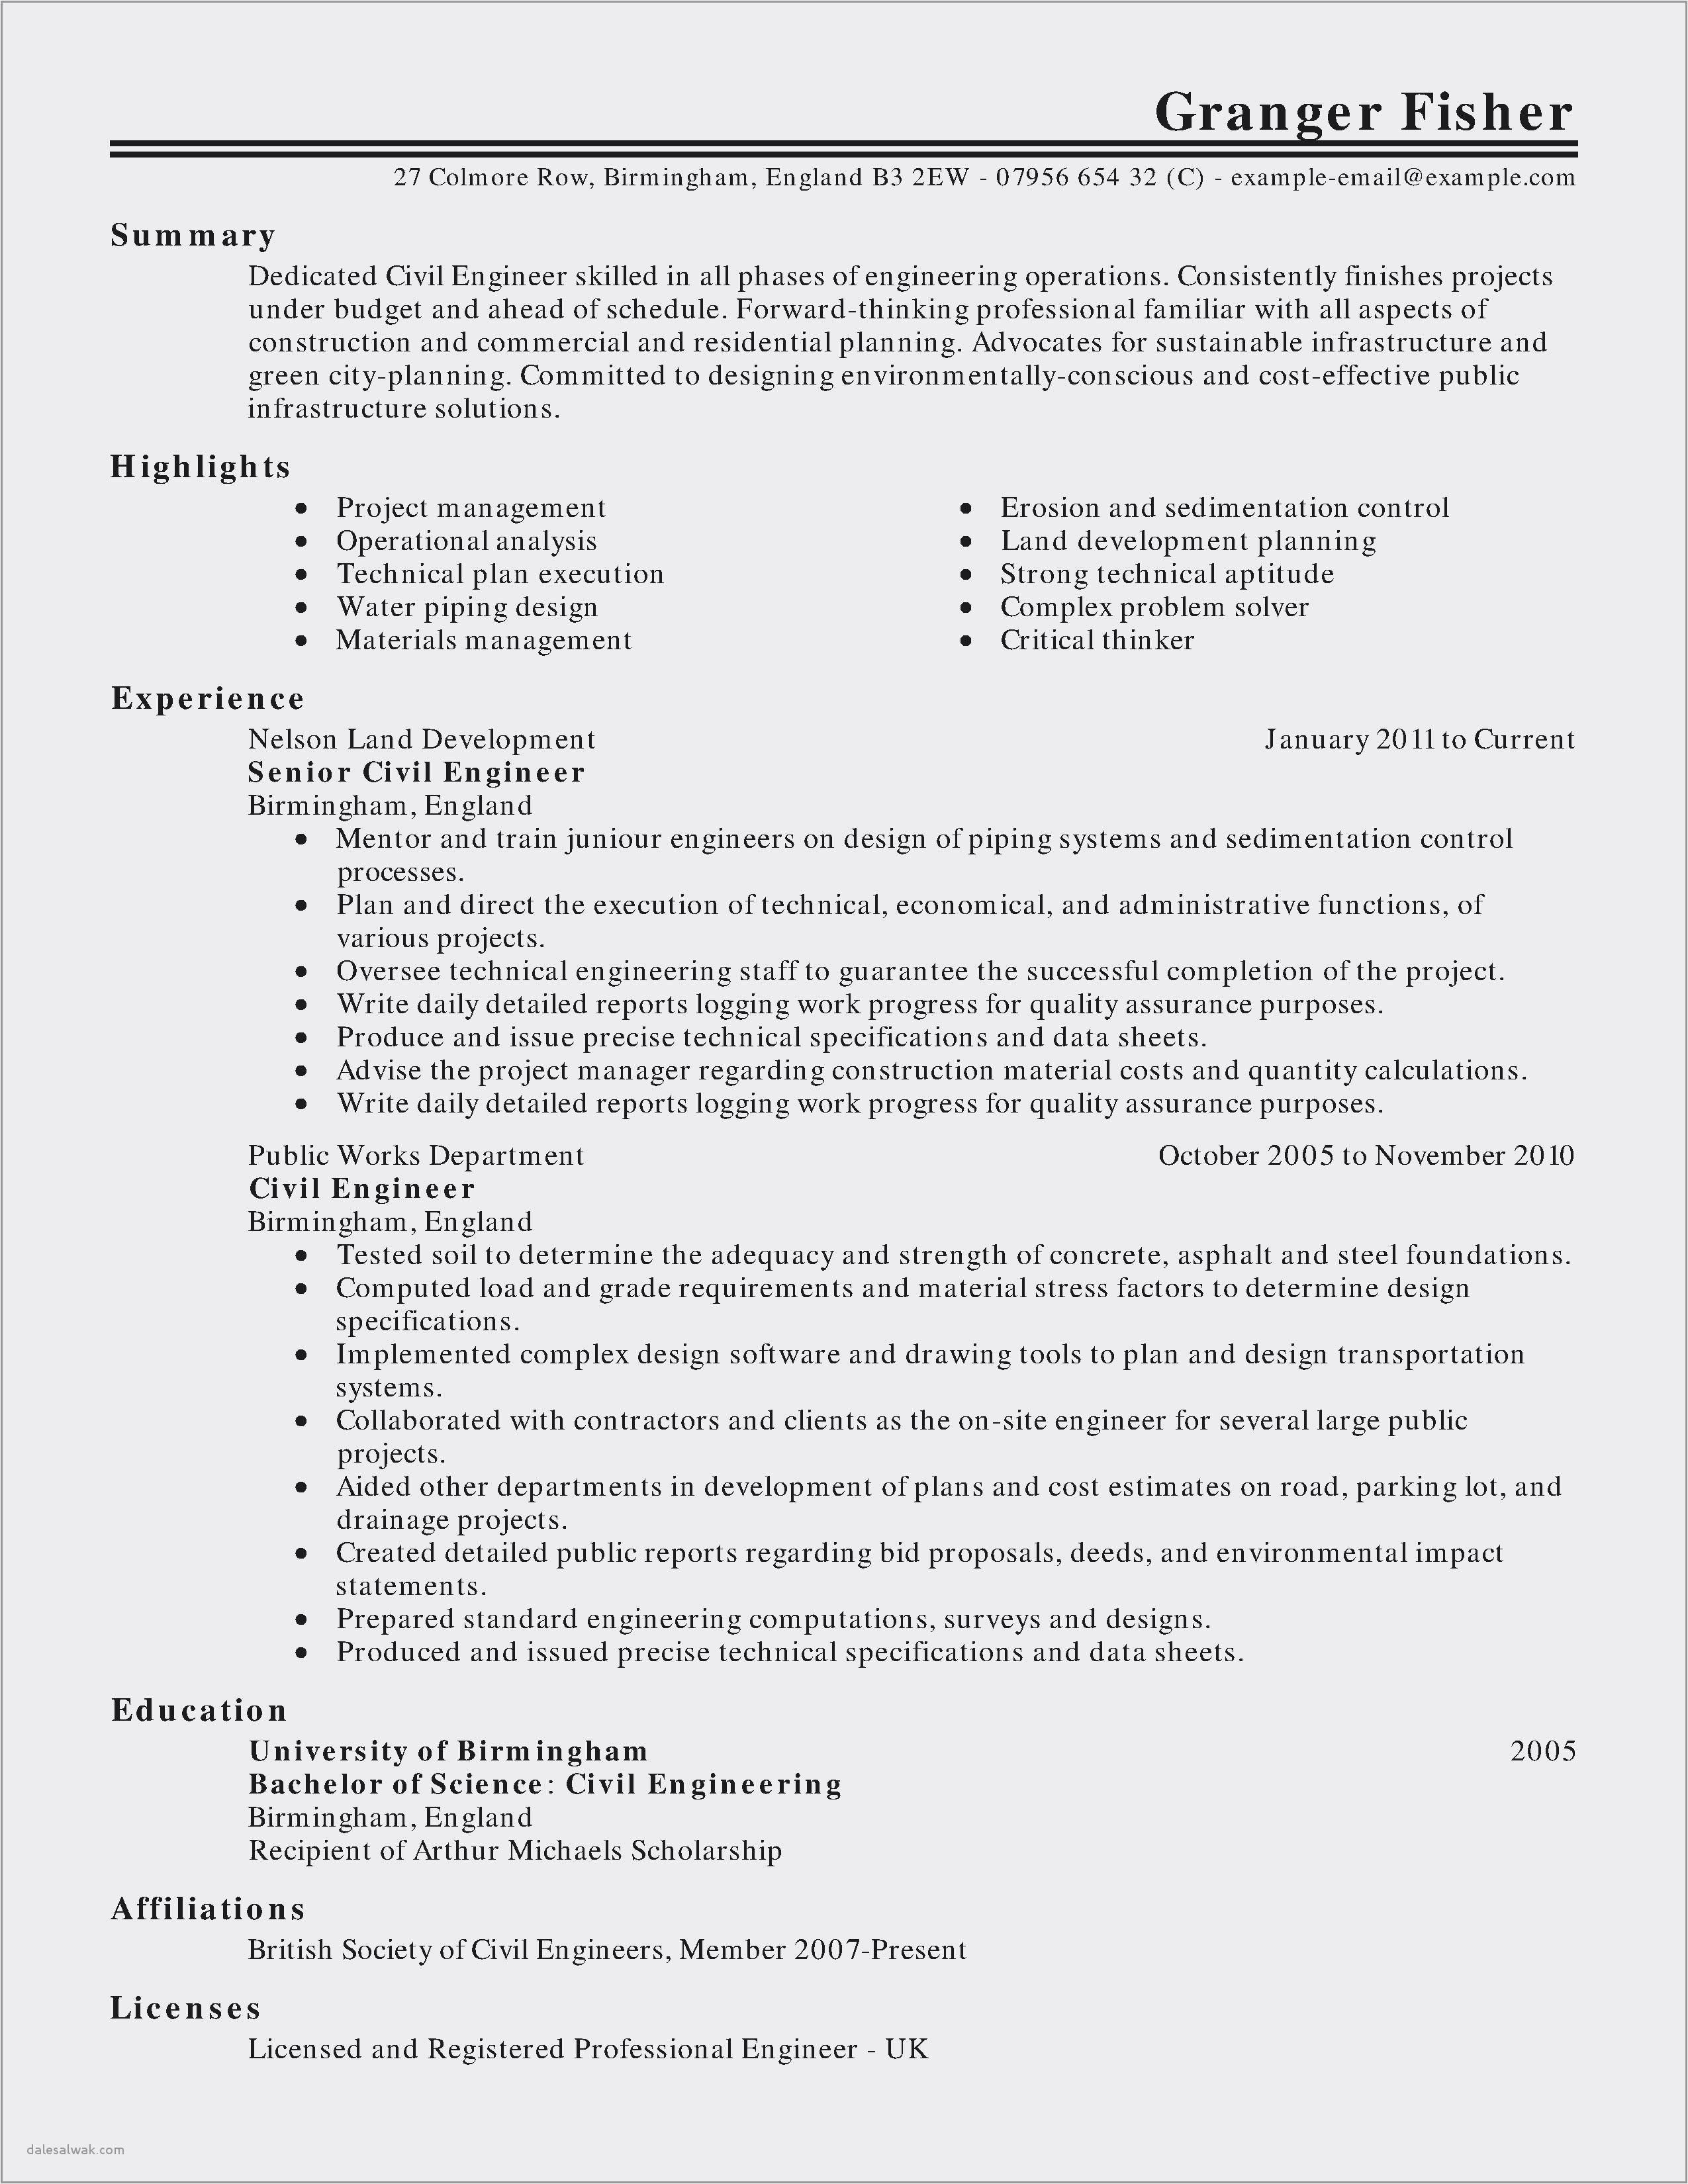 resume template open office writer Collection-New Resume Templates Open Fice Idées format Cv Open fice 11-l